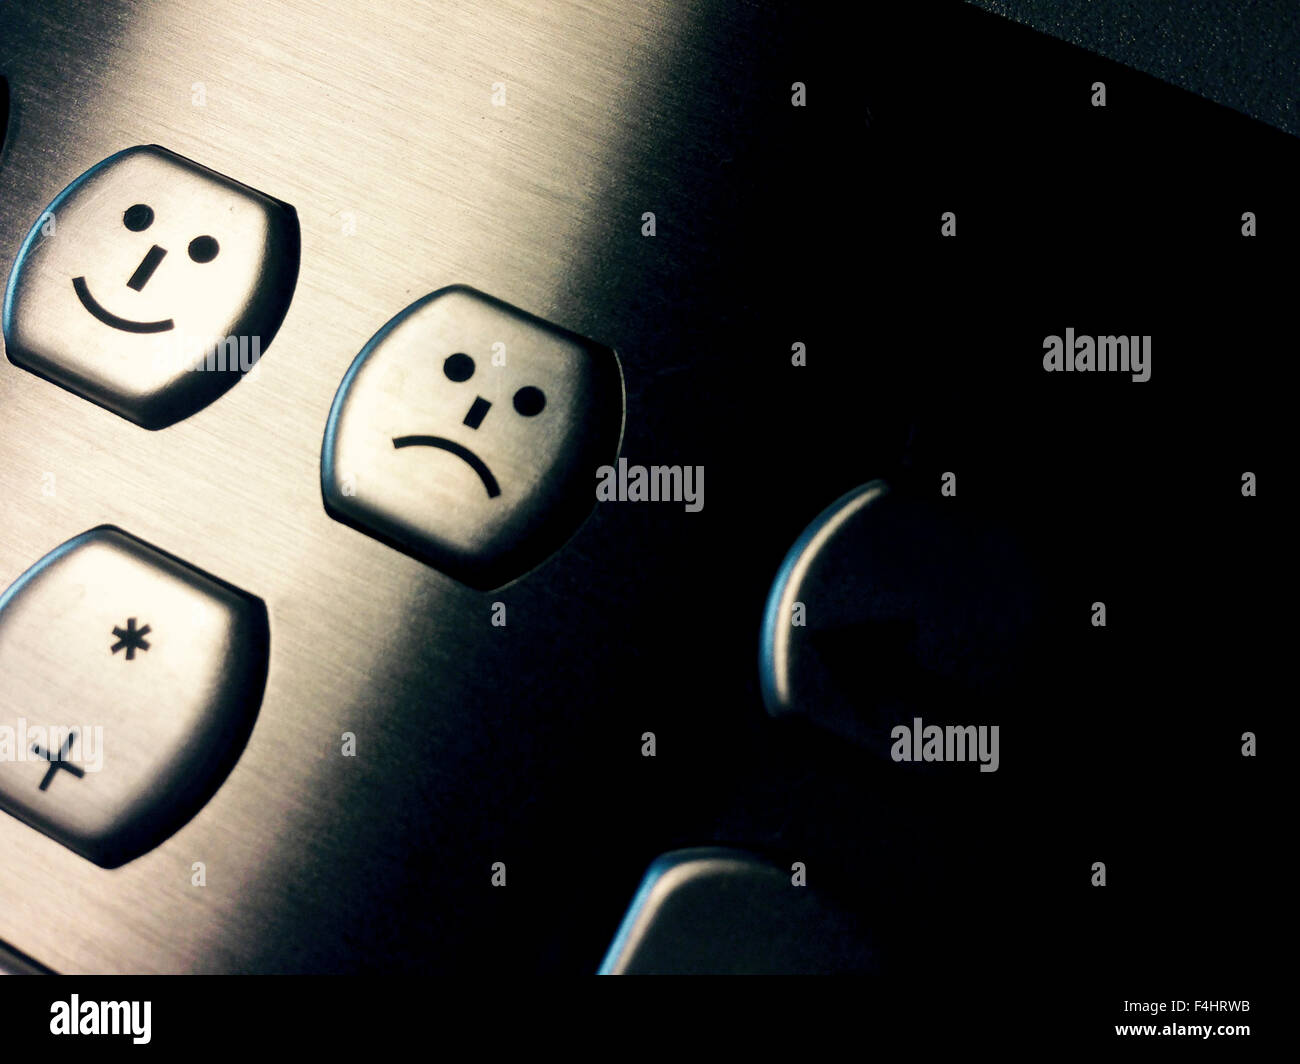 Sad Face Emoticon Type Stock Photos Sad Face Emoticon Type Stock